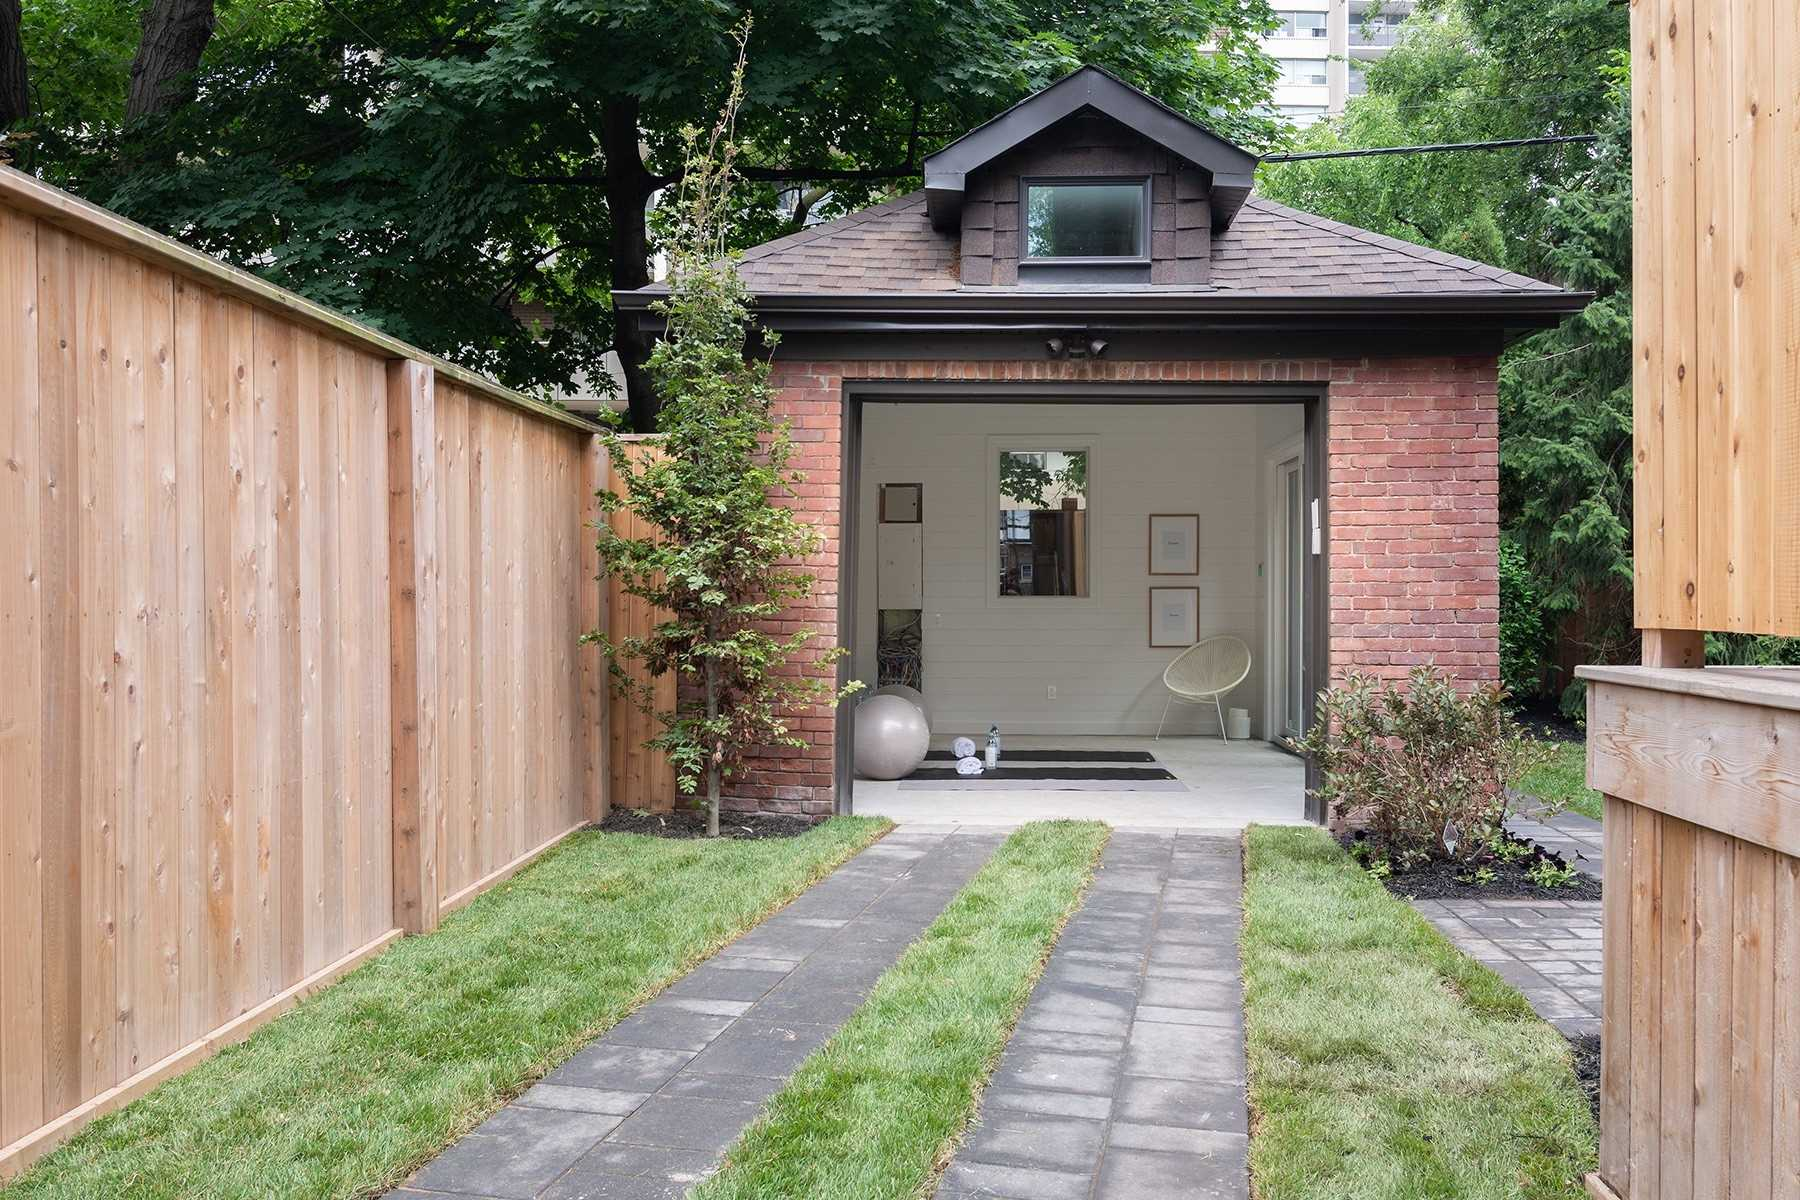 92 Admiral Rd, Toronto, Ontario M5R2L6, 4 Bedrooms Bedrooms, 6 Rooms Rooms,5 BathroomsBathrooms,Detached,For Sale,Admiral,C4838442